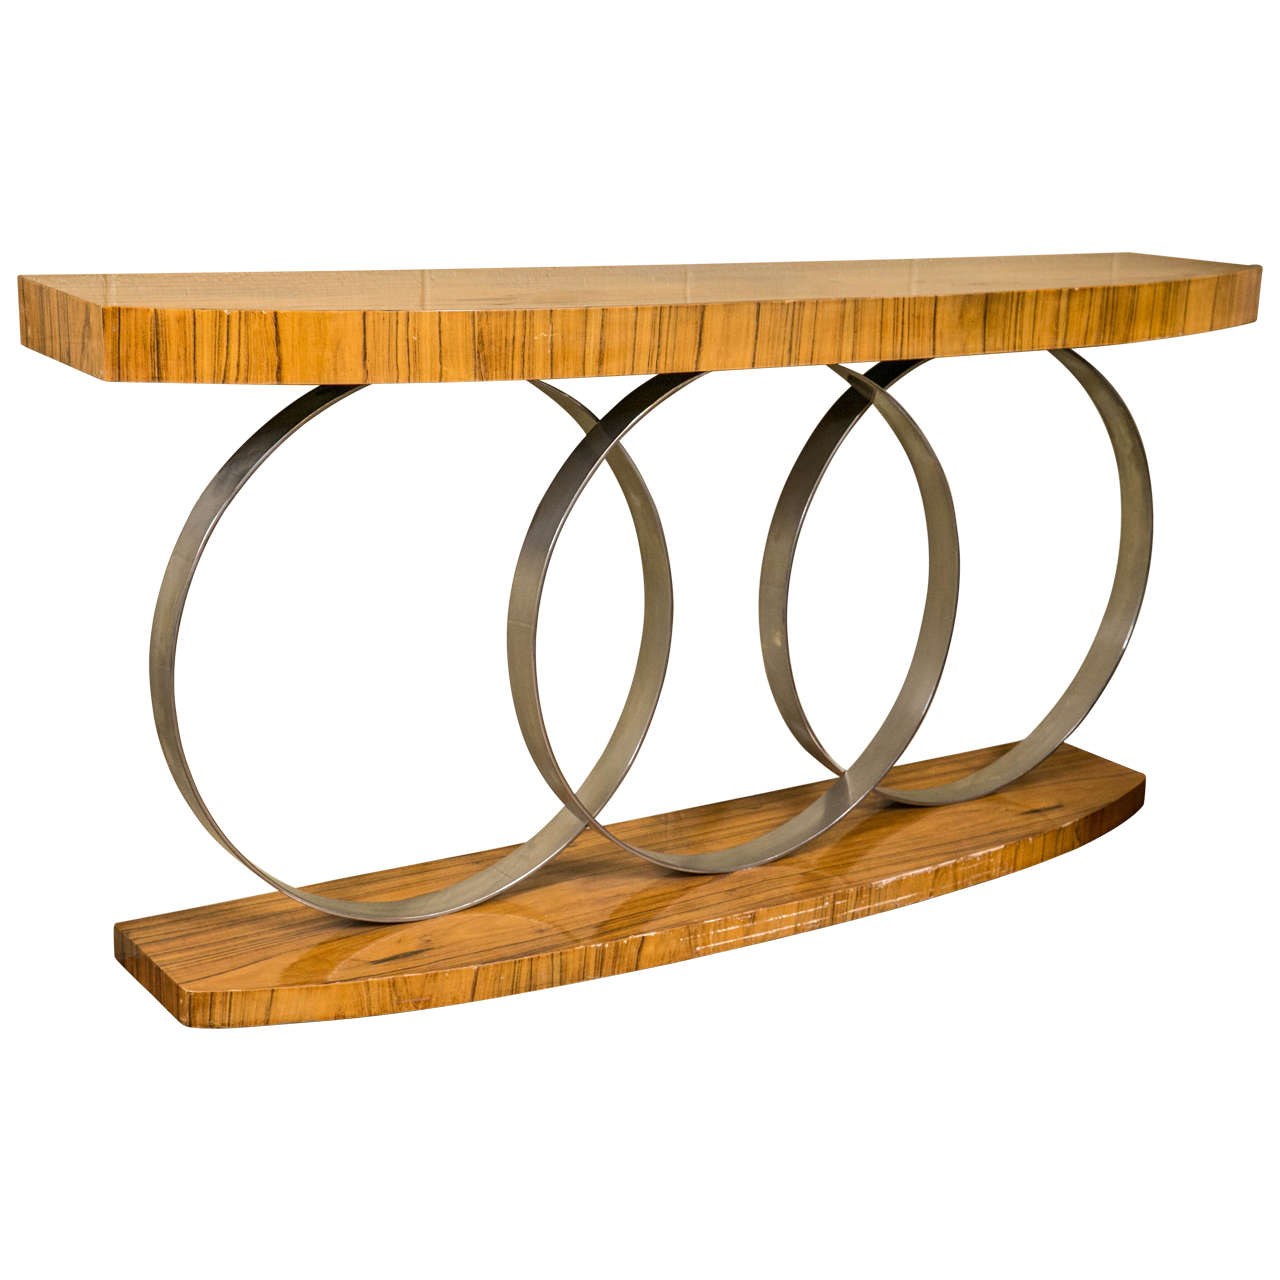 Art deco style console table for sale at 1stdibs art deco style console table 1 geotapseo Image collections